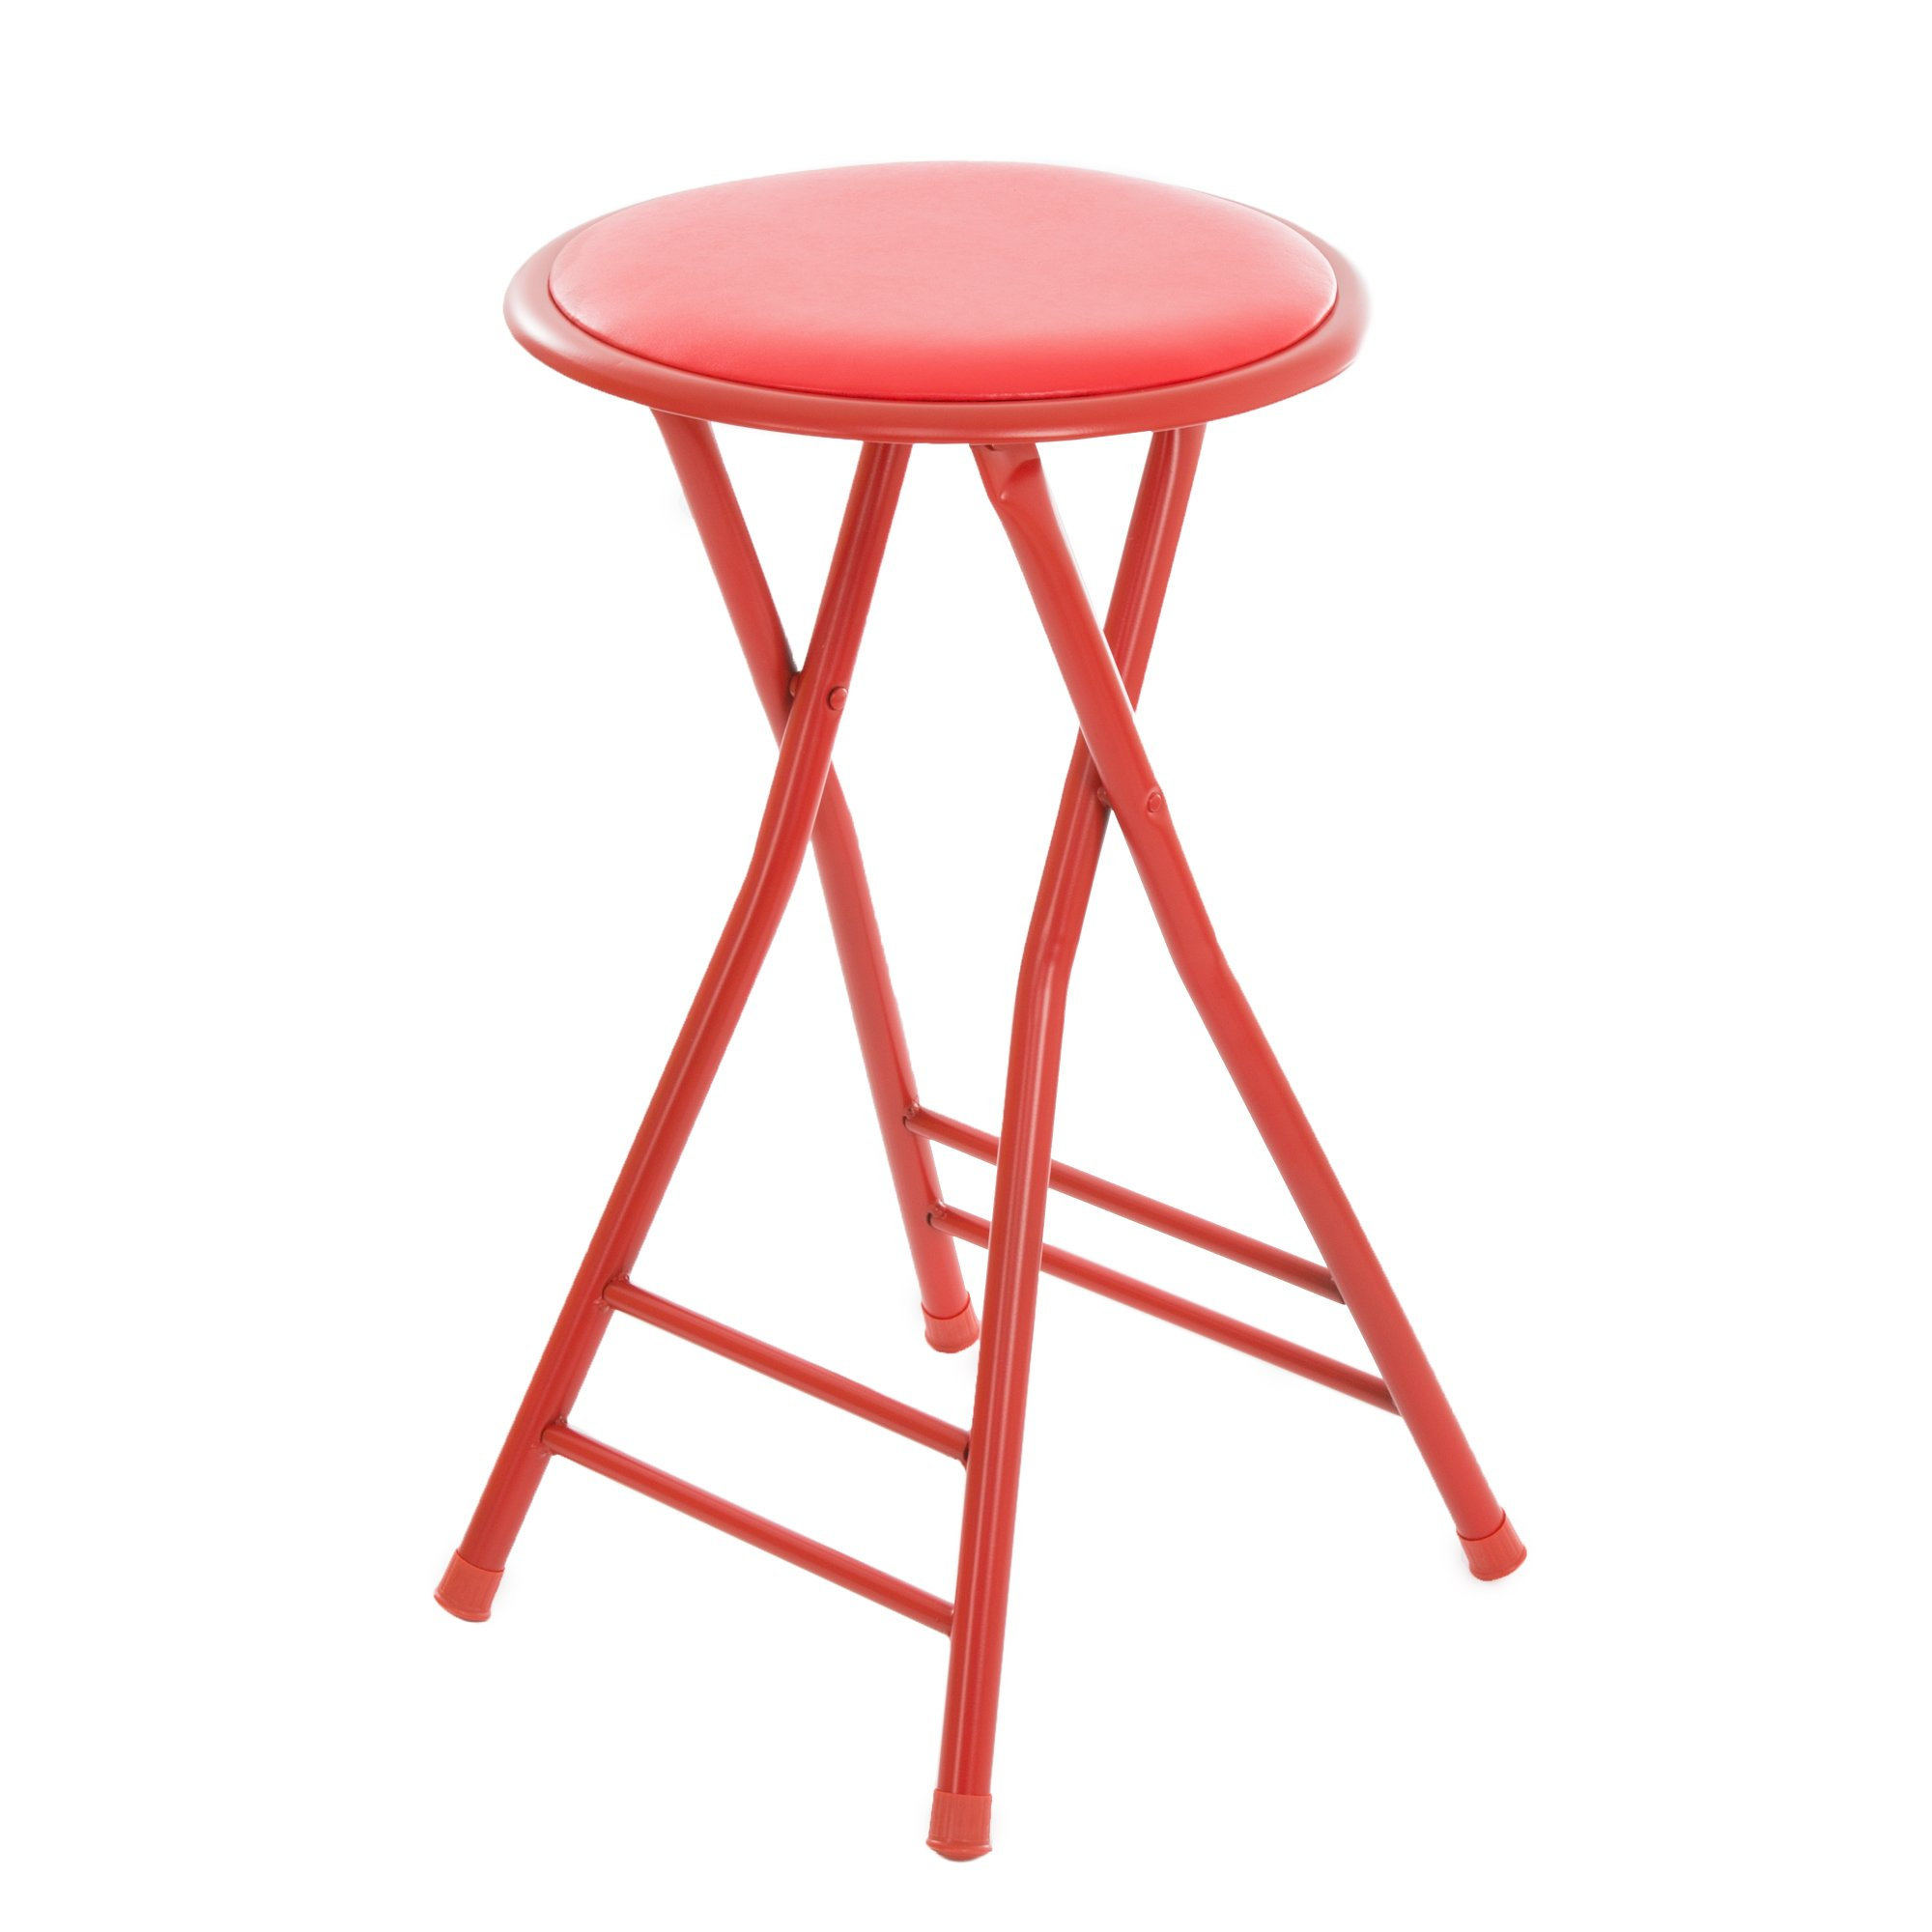 Trademark Home Folding Stool - Heavy Duty 24-Inch Collapsible Padded Round Stool with 300 Pound Limit for Dorm, Rec or Gameroom (Red) by Trademark Home